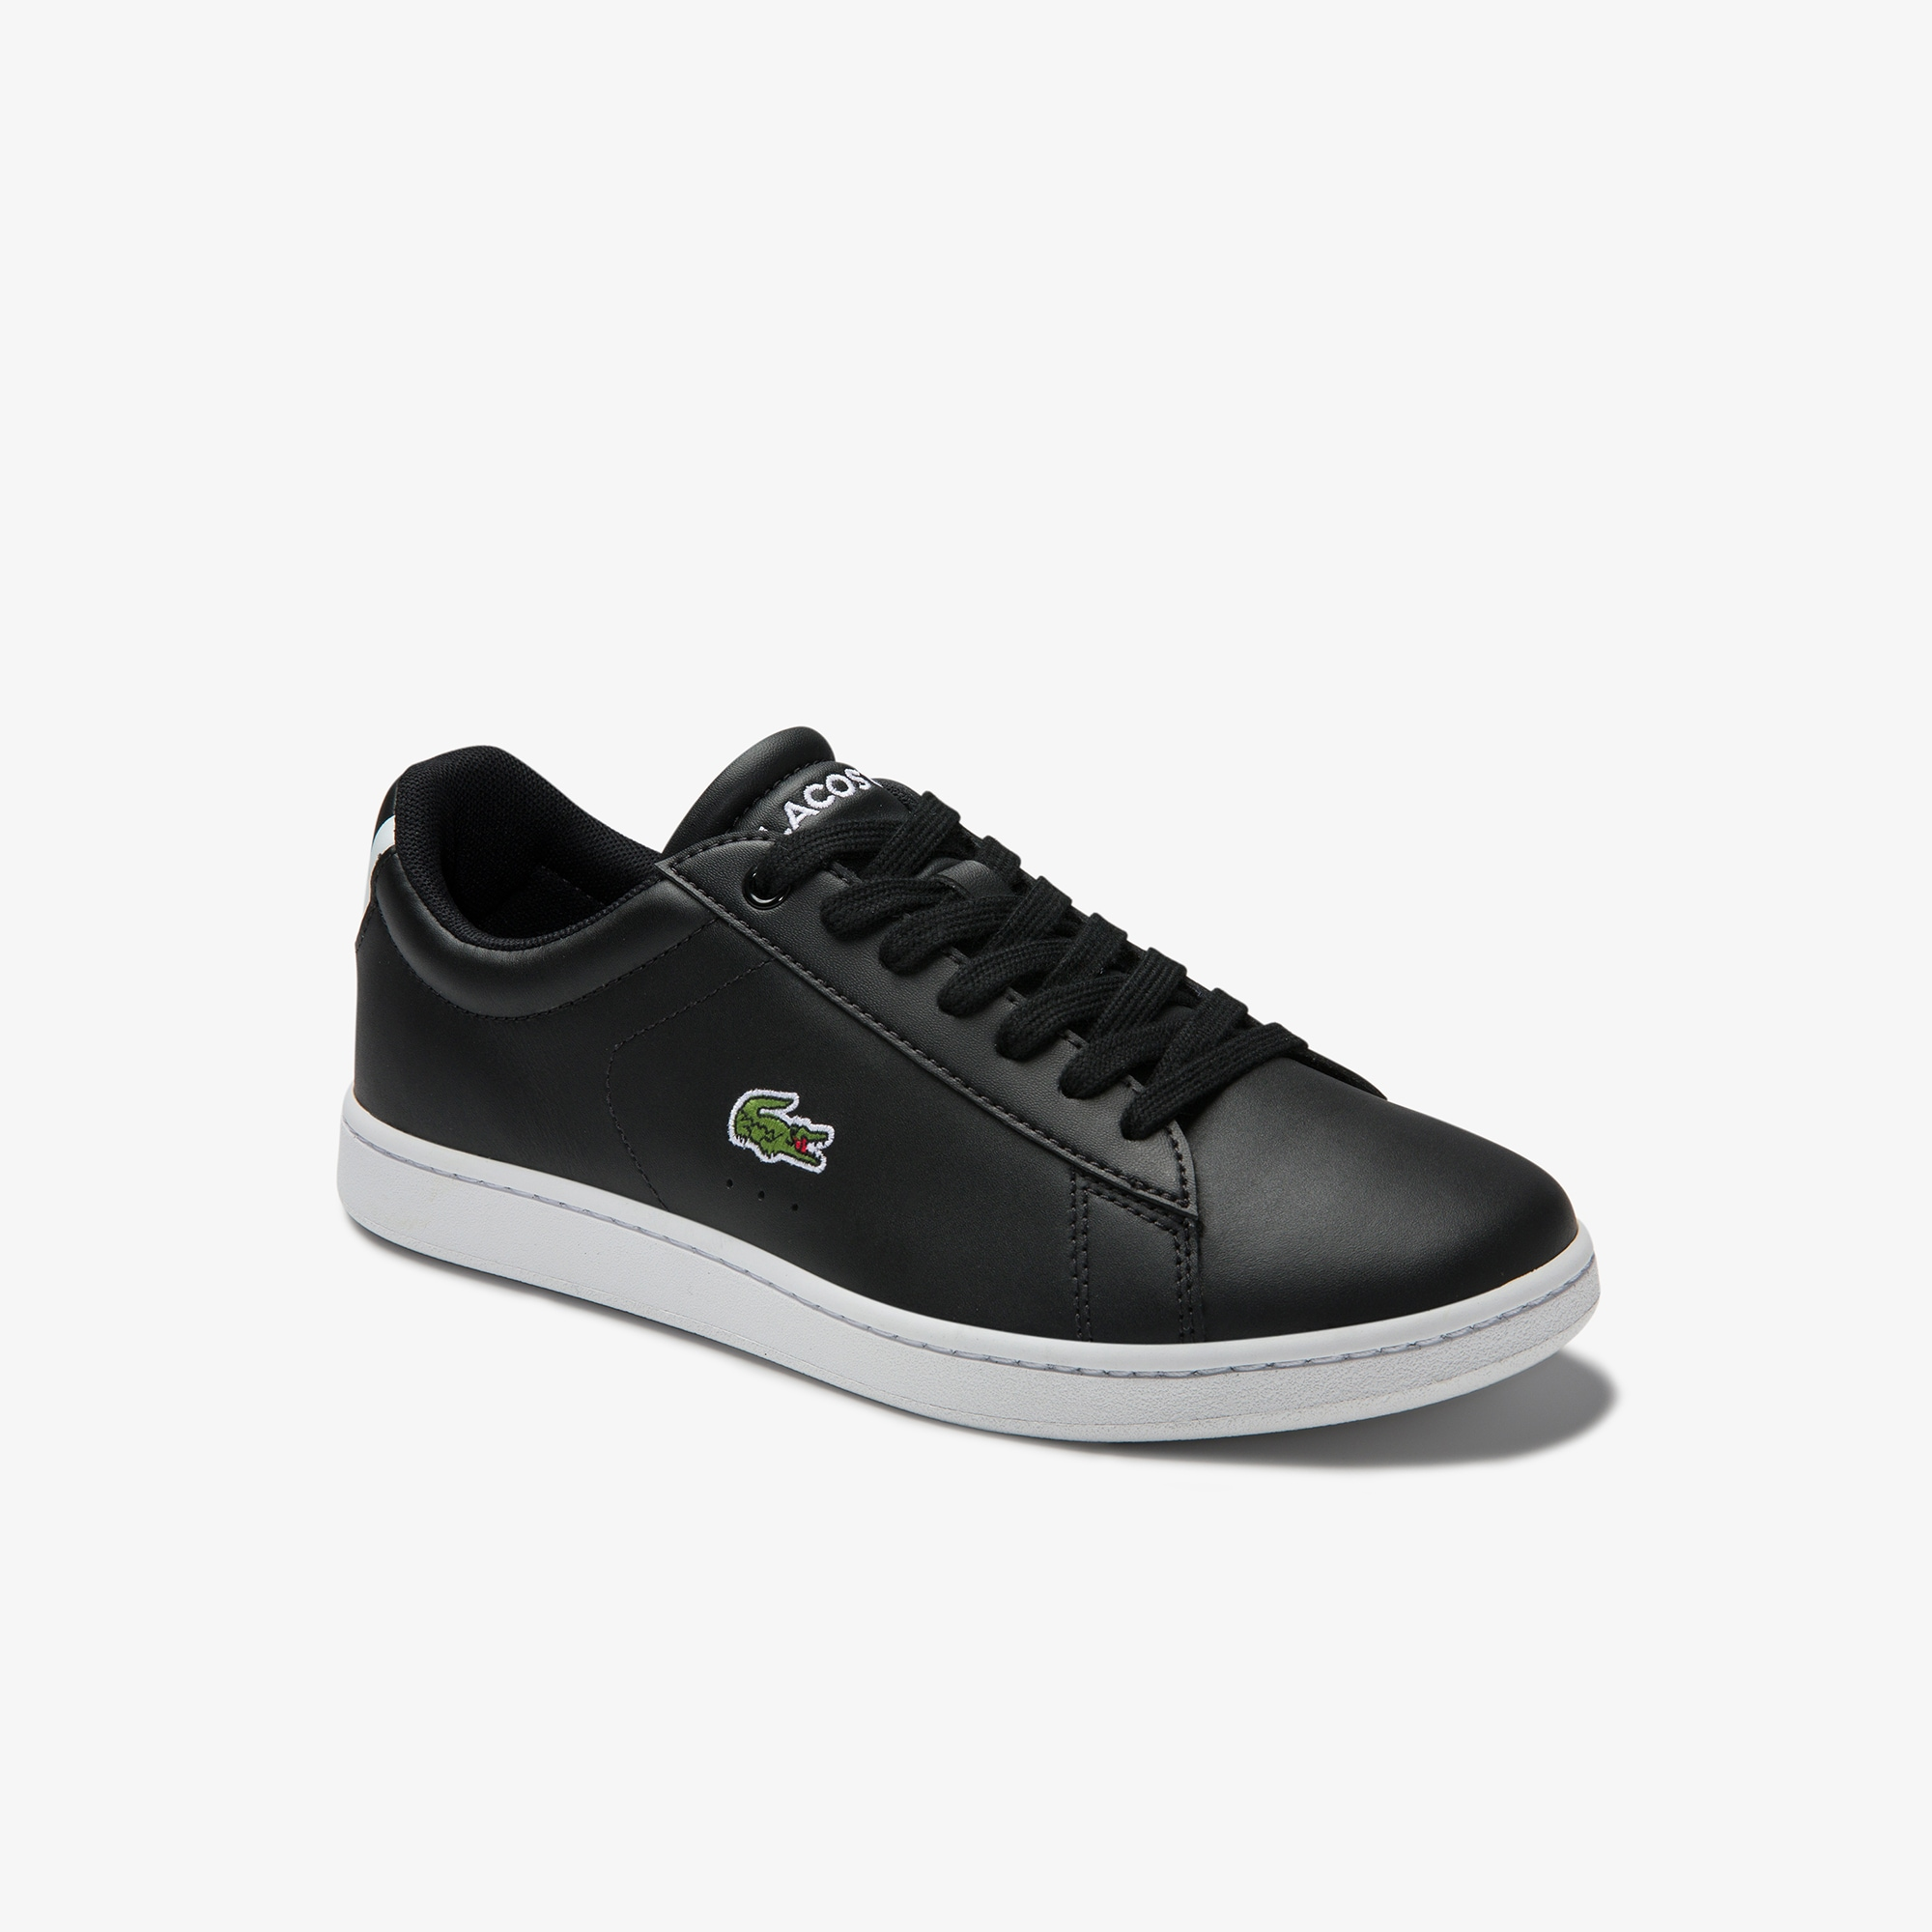 29e445d2f9f Shoes for Women | Footwear | LACOSTE